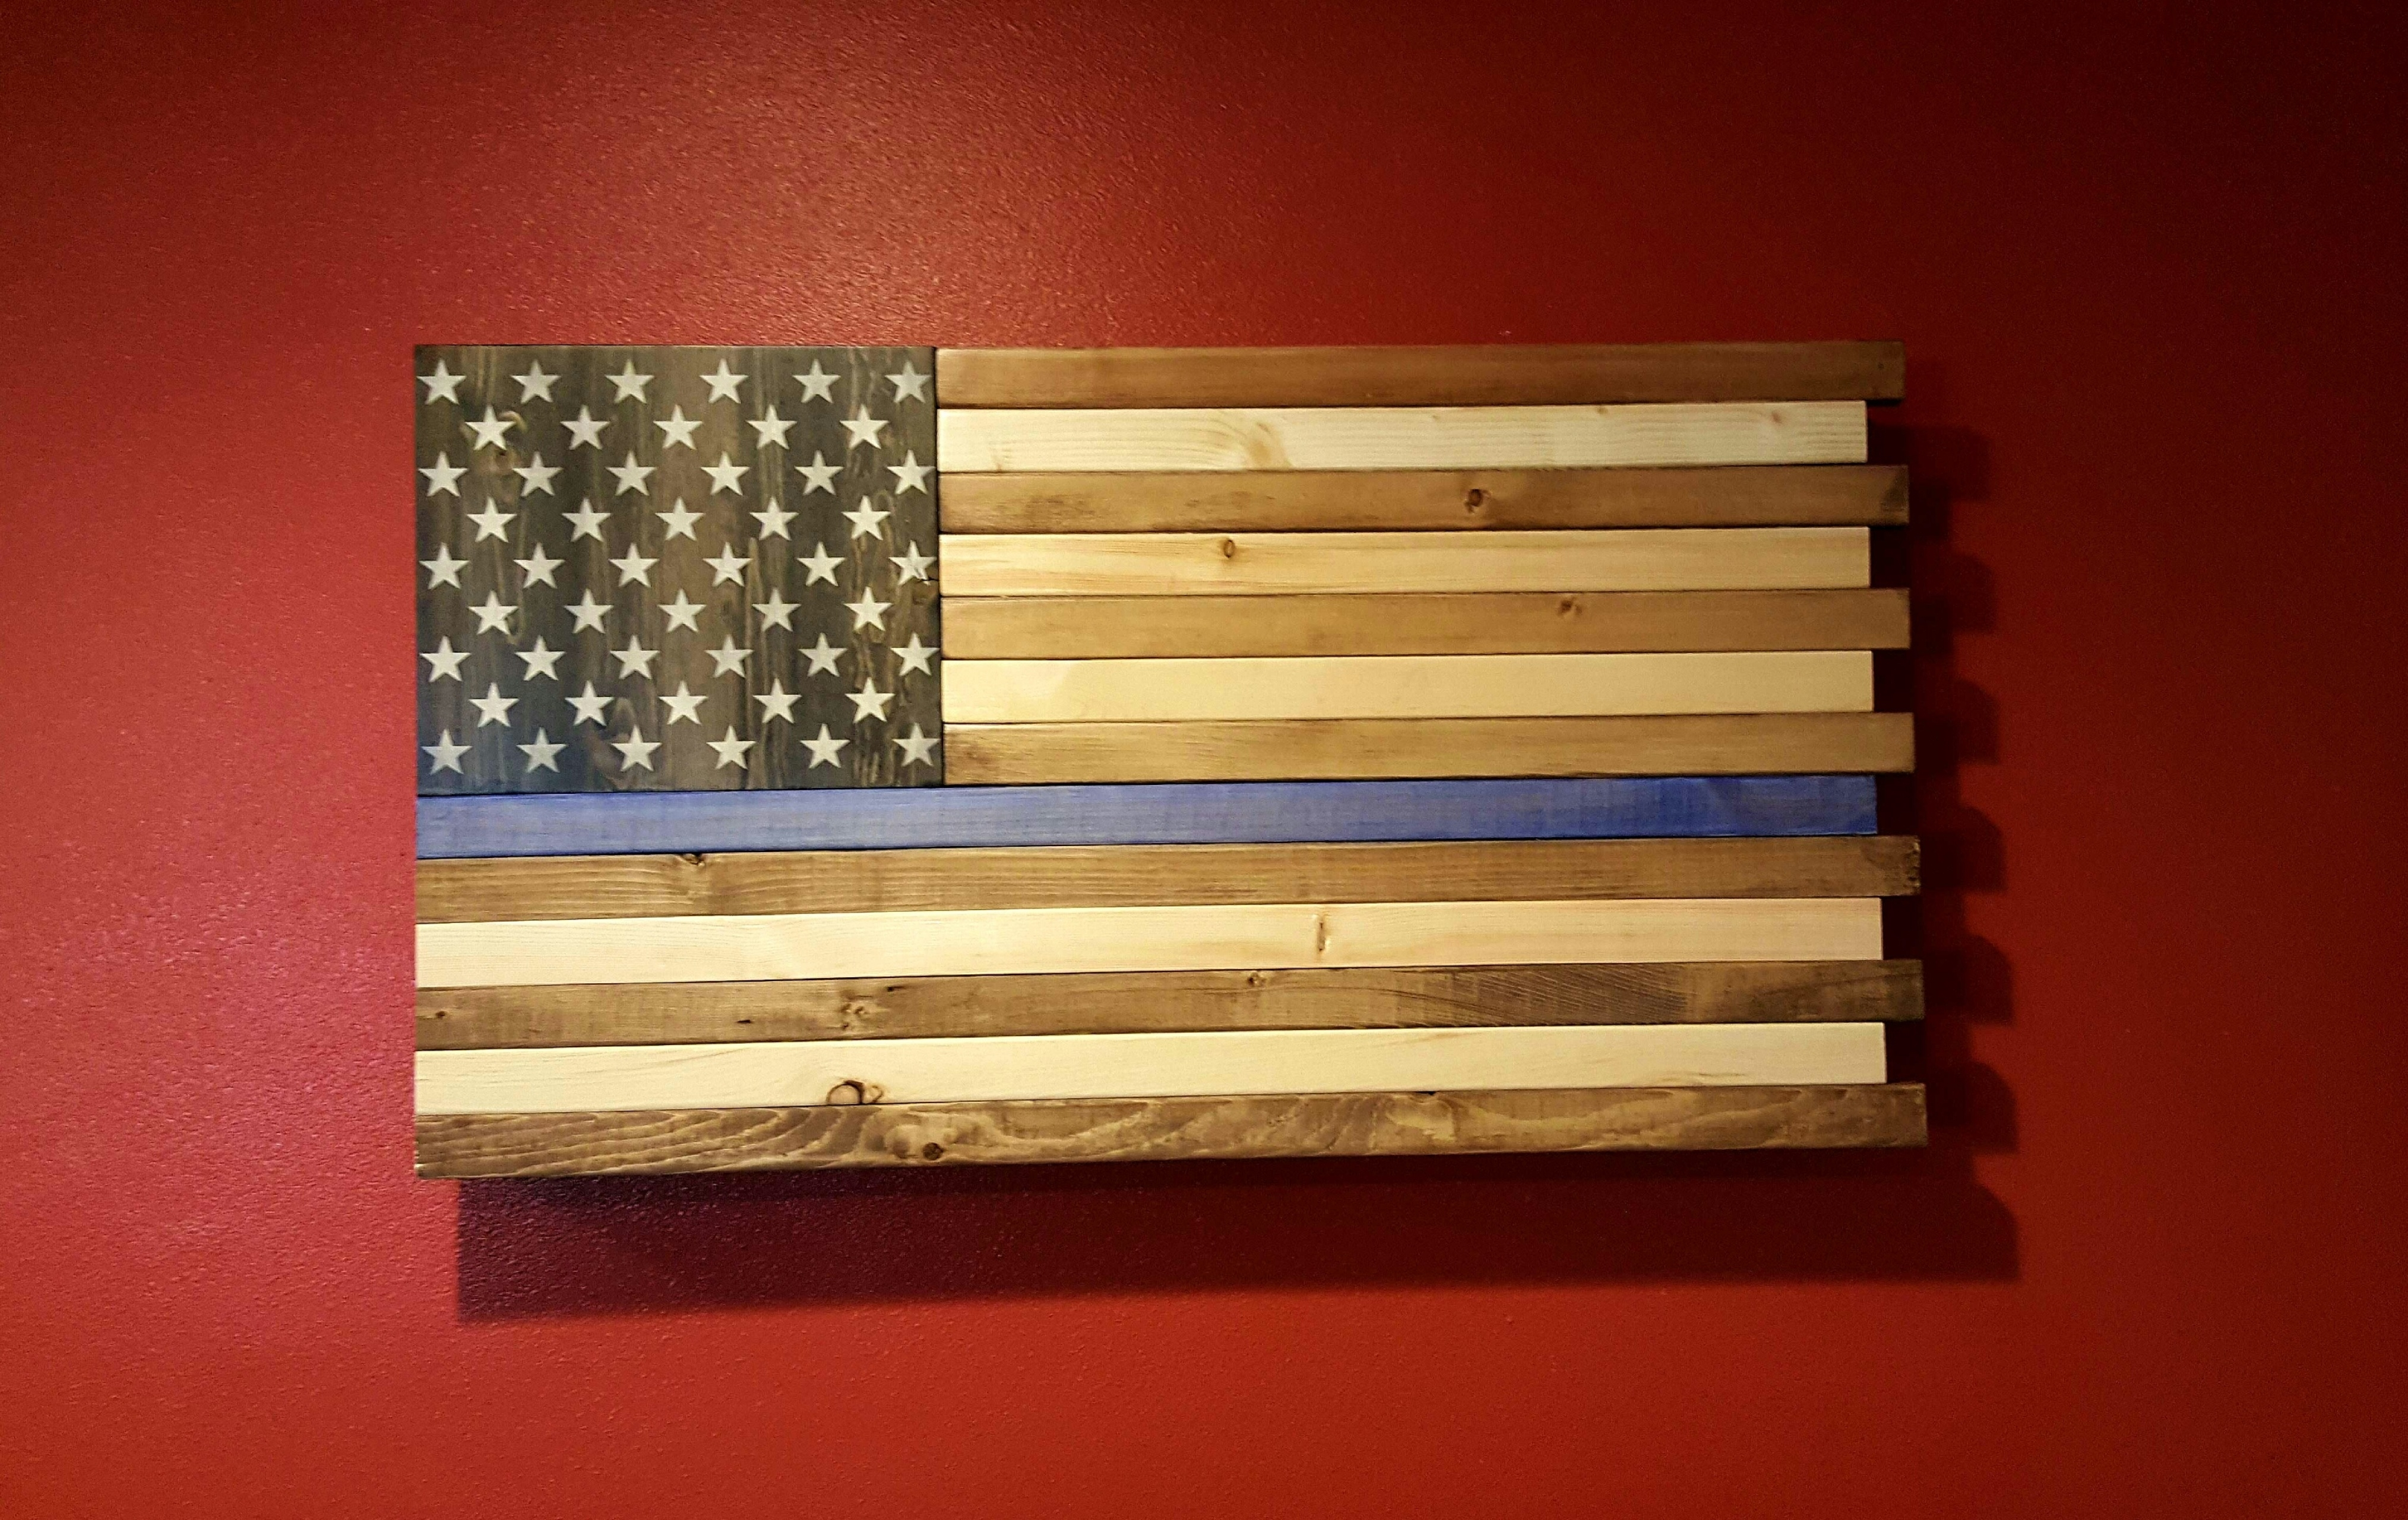 The Thin Blue Line Rustic American Flag Wall Art Regarding Most Current Rustic American Flag Wall Art (View 18 of 20)